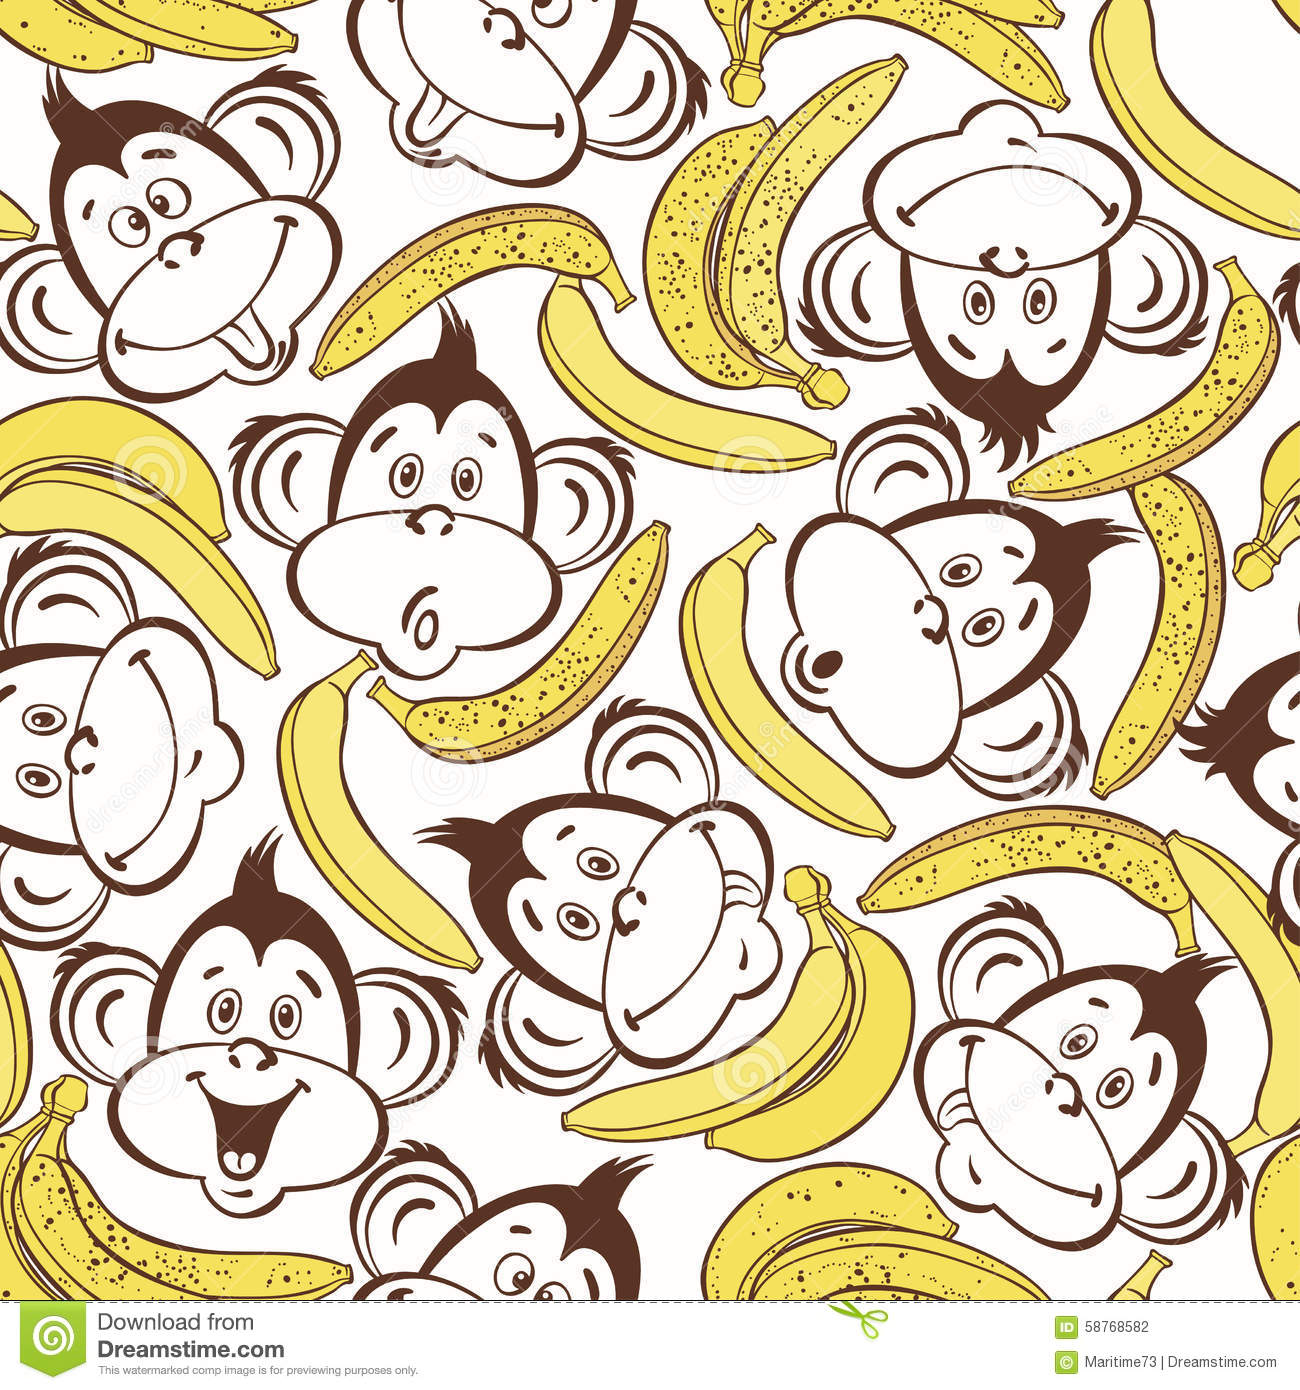 japanese wallpaper cartoon monkey - photo #27